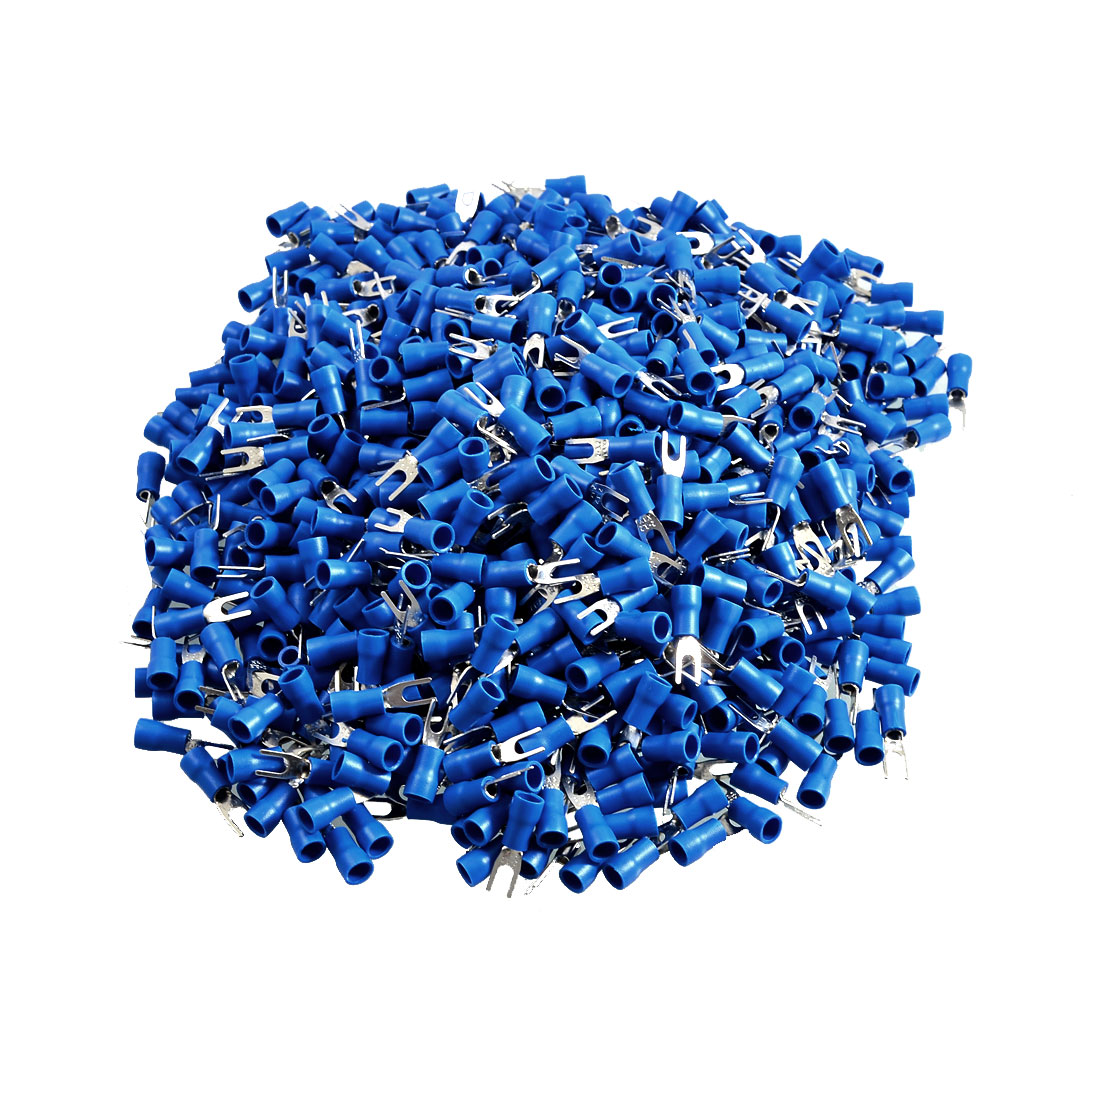 1000-x-Blue-PVC-Insulating-Sleeve-Furcate-Terminals-Cable-Lug-SV2-3-2